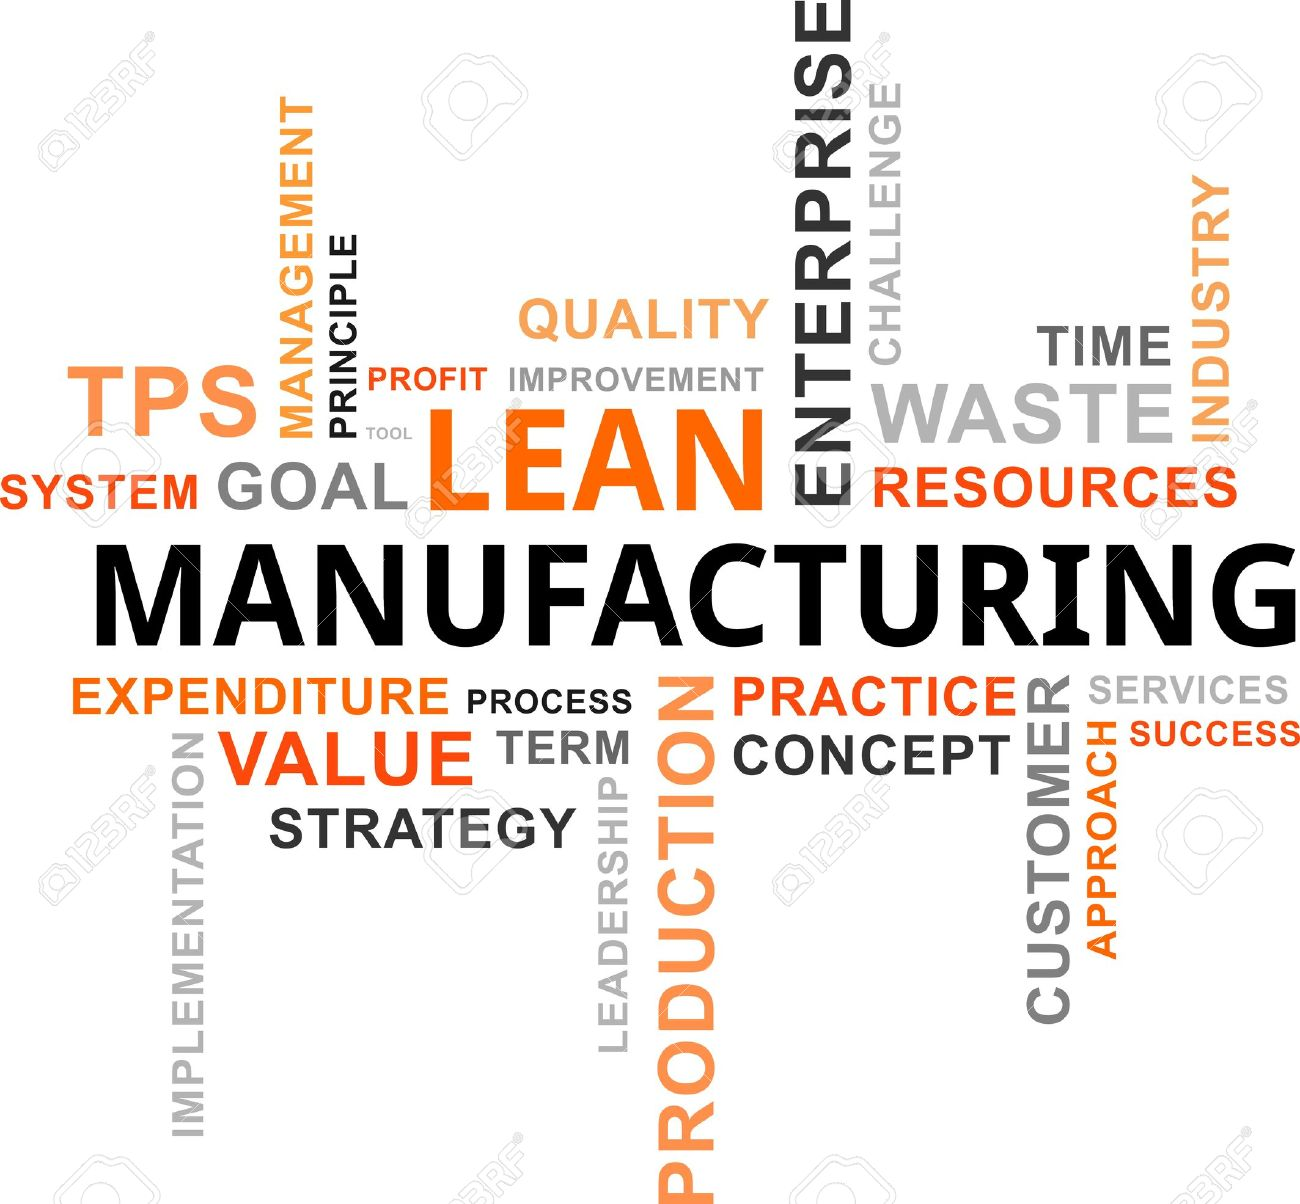 https://previews.123rf.com/images/masterart/masterart1305/masterart130500014/19867042-A-word-cloud-of-lean-manufacturing-related-items-Stock-Vector.jpg